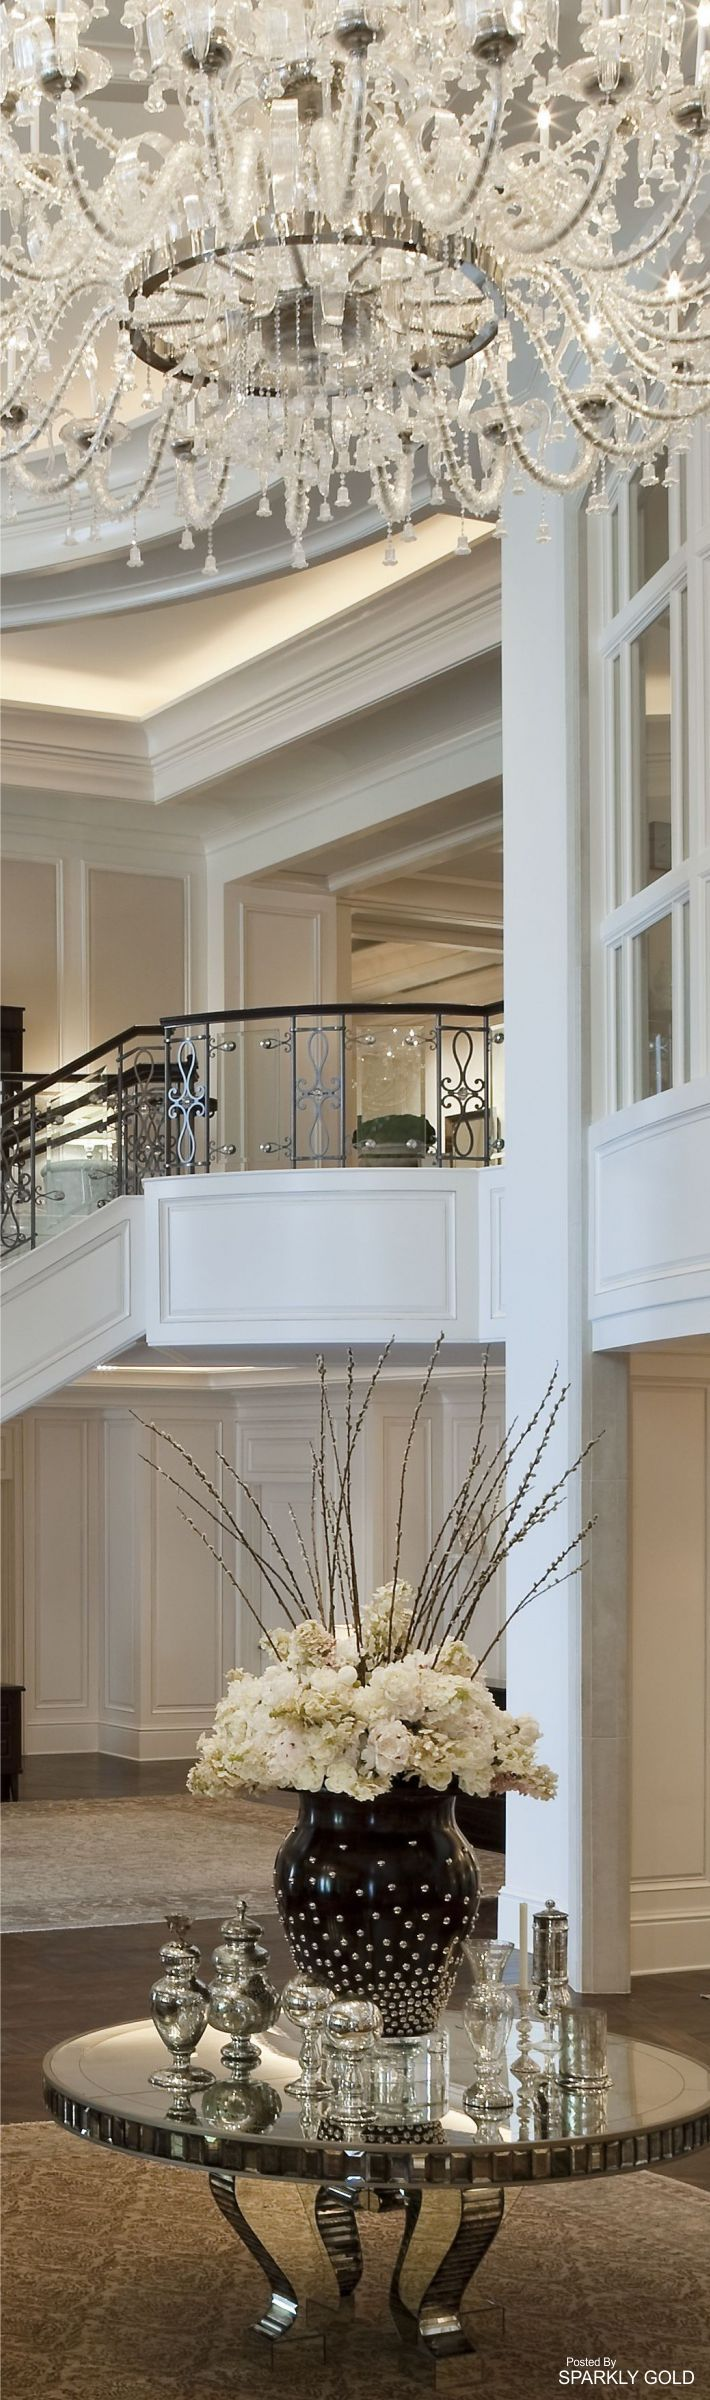 How Big Should Foyer Be : Ideas about foyer chandelier on pinterest ceiling